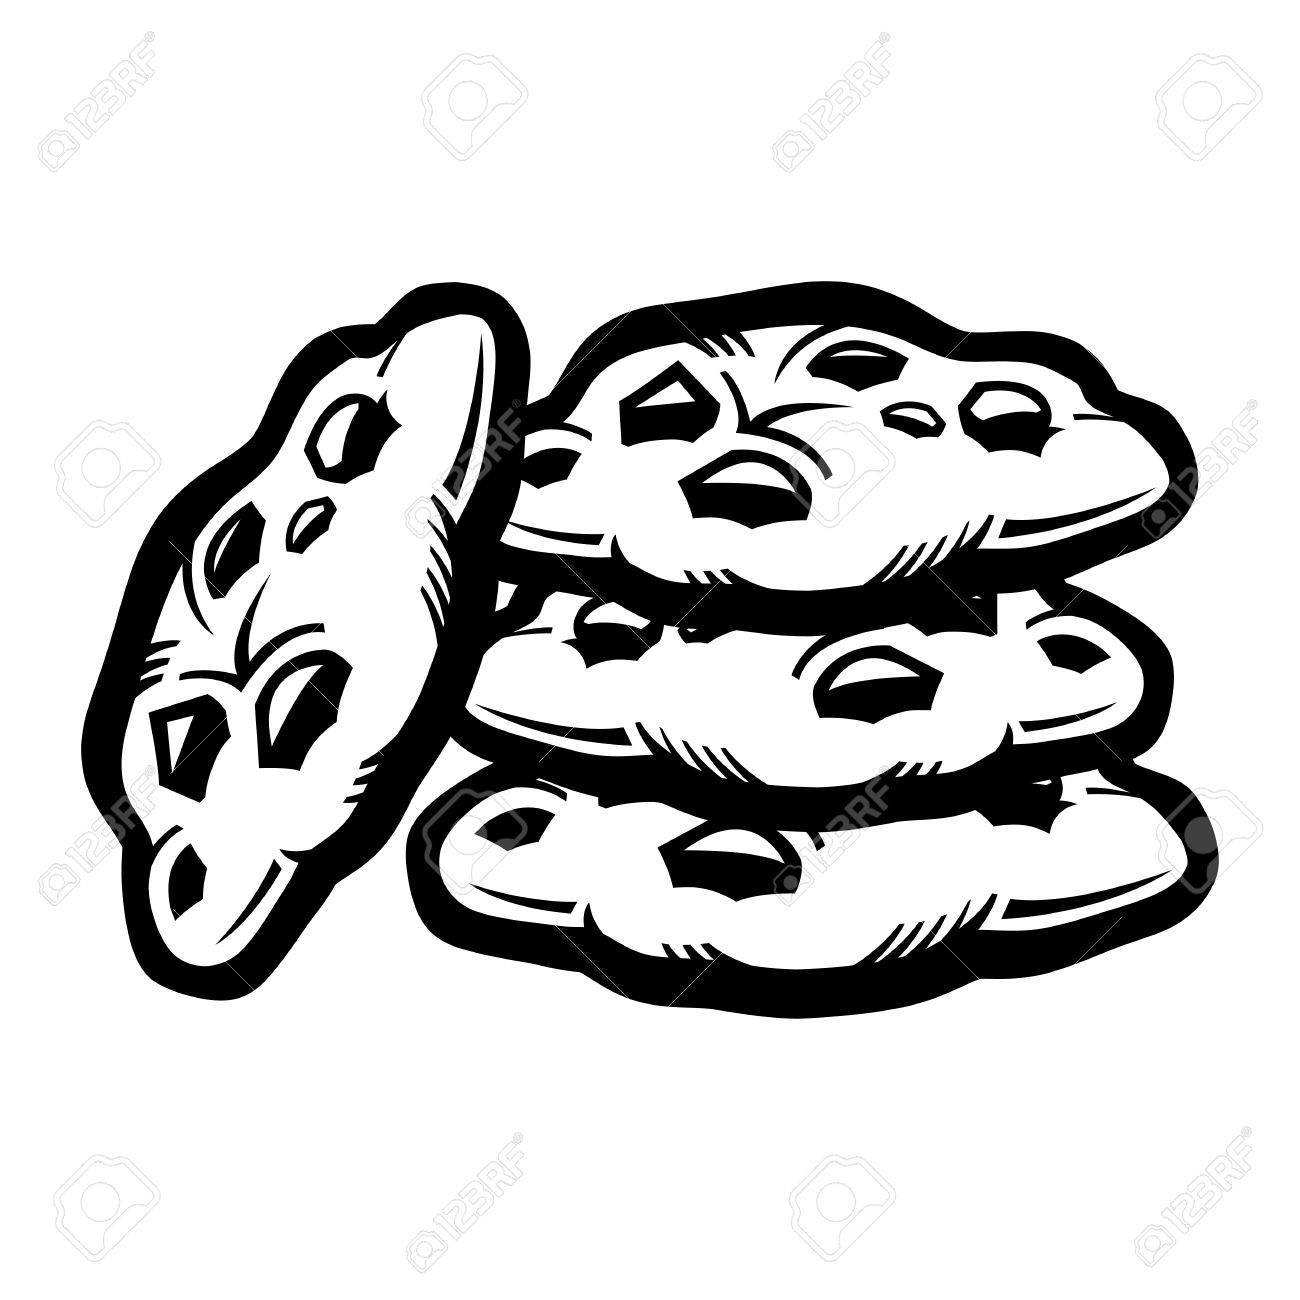 Chocolate chip cookies clipart black and white 6 » Clipart Portal.